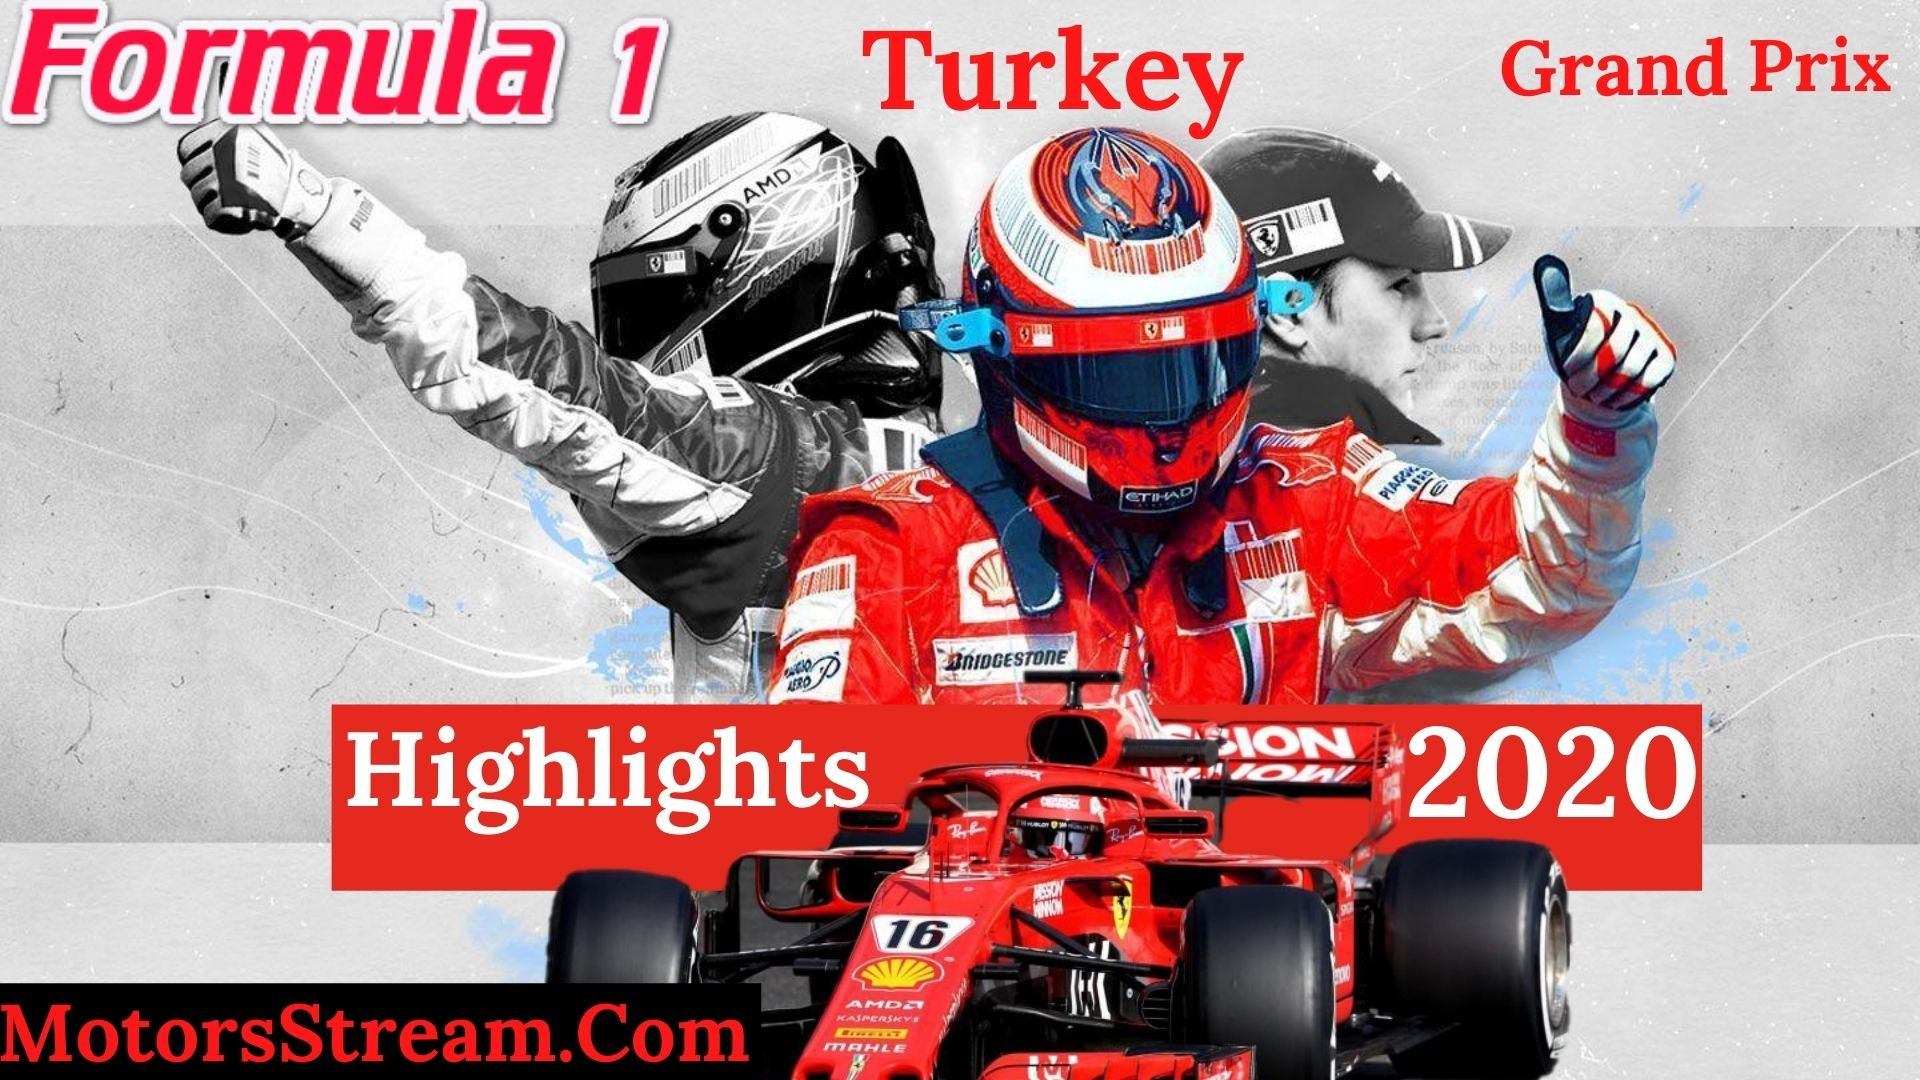 Turkey Grand Prix Final Race Highlights 2020 Formula 1